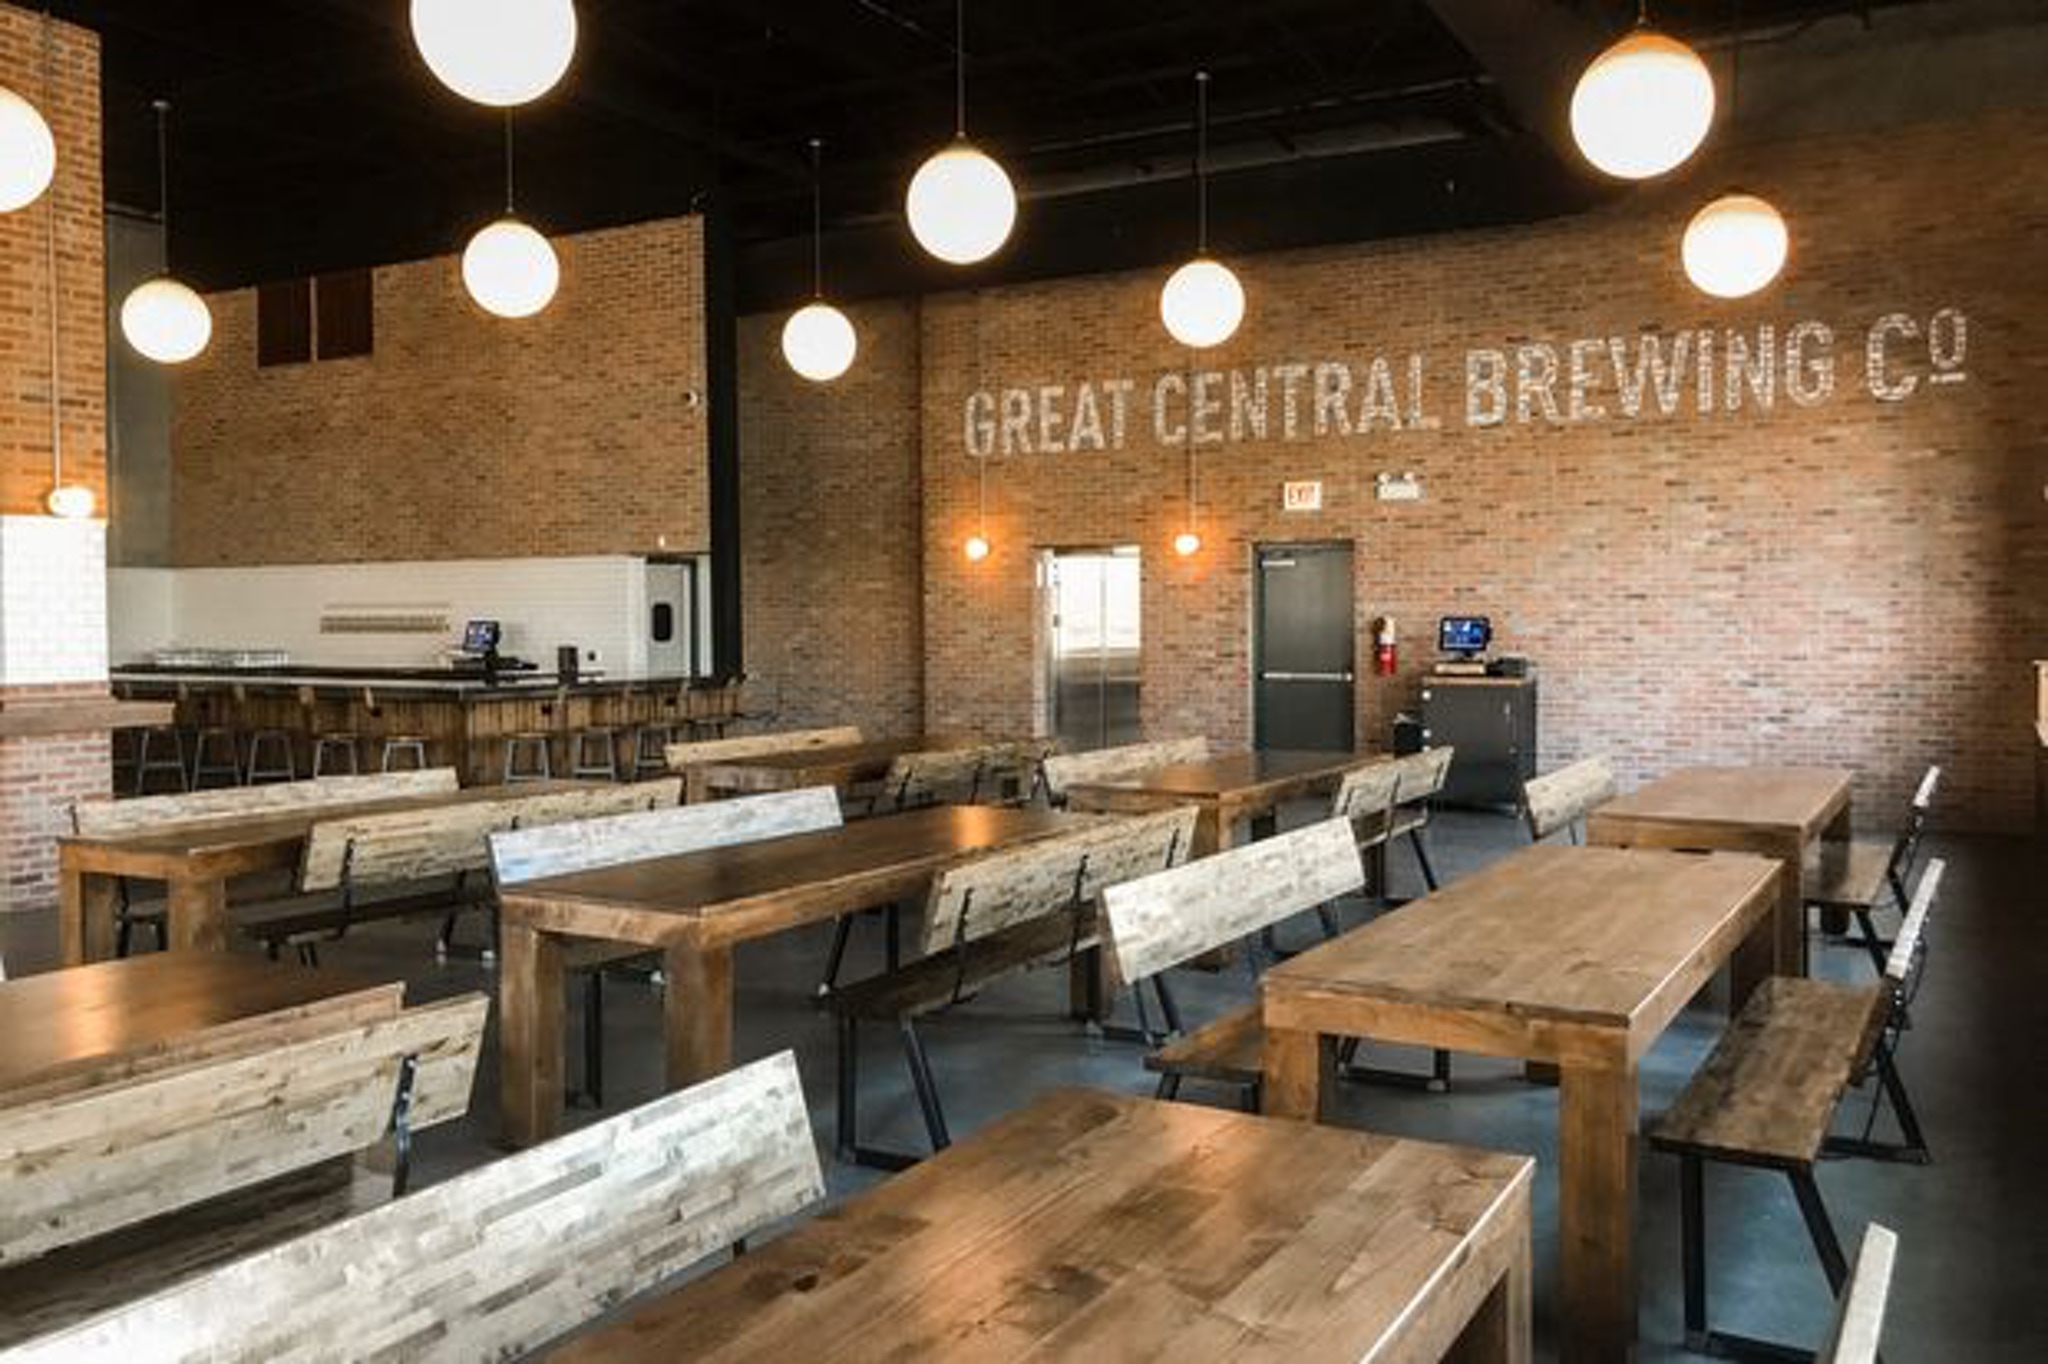 Chicago West Loop Wedding Venue - Great Central Brewing